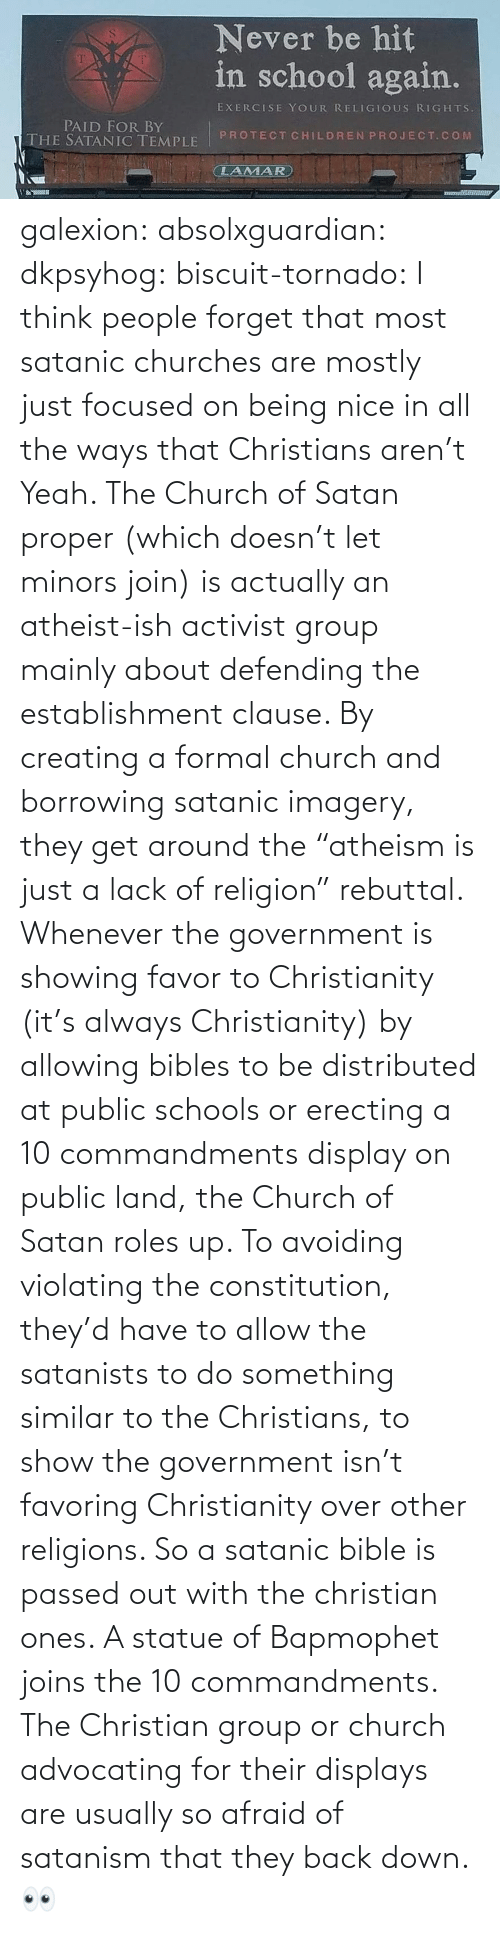 "Ways: galexion:  absolxguardian:  dkpsyhog:  biscuit-tornado:     I think people forget that most satanic churches are mostly just focused on being nice in all the ways that Christians aren't  Yeah. The Church of Satan proper (which doesn't let minors join) is actually an atheist-ish activist group mainly about defending the establishment clause. By creating a formal church and borrowing satanic imagery, they get around the ""atheism is just a lack of religion"" rebuttal. Whenever the government is showing favor to Christianity (it's always Christianity) by allowing bibles to be distributed at public schools or erecting a 10 commandments display on public land, the Church of Satan roles up. To avoiding violating the constitution, they'd have to allow the satanists to do something similar to the Christians, to show the government isn't favoring Christianity over other religions. So a satanic bible is passed out with the christian ones. A statue of Bapmophet joins the 10 commandments. The Christian group or church advocating for their displays are usually so afraid of satanism that they back down.   👀"